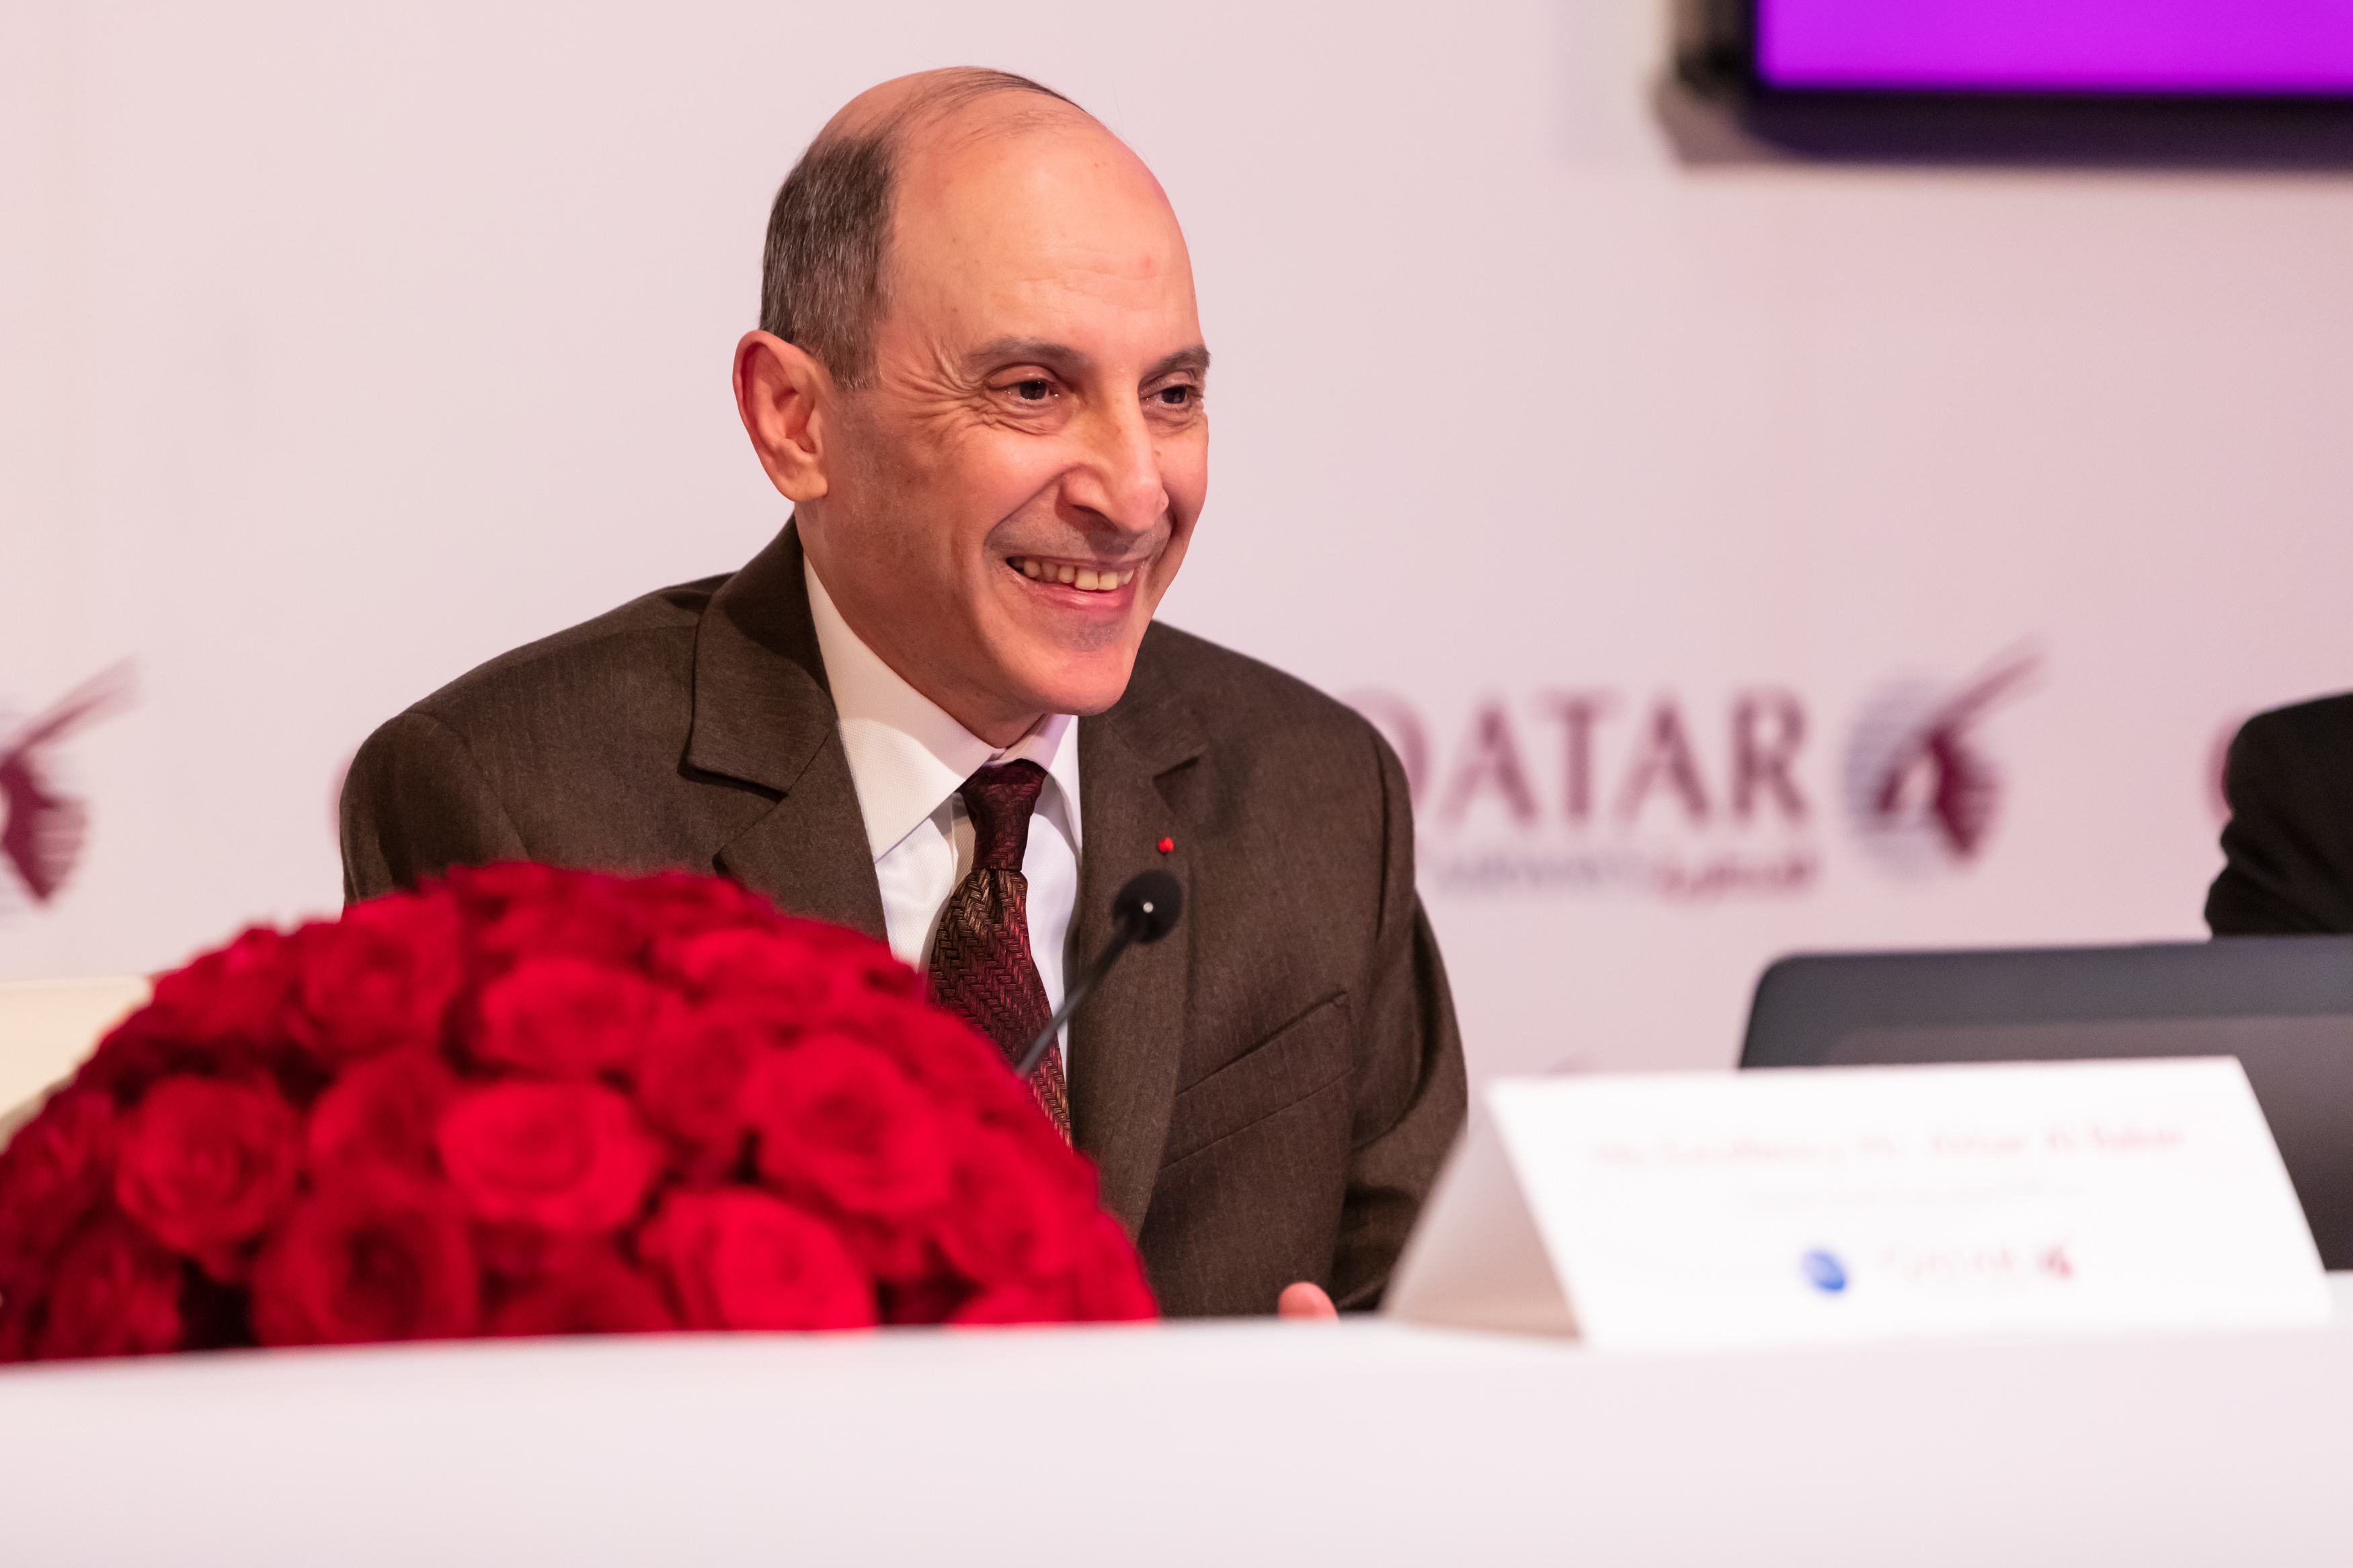 His Excellency Mr. Akbar Al Baker - Qatar Airways